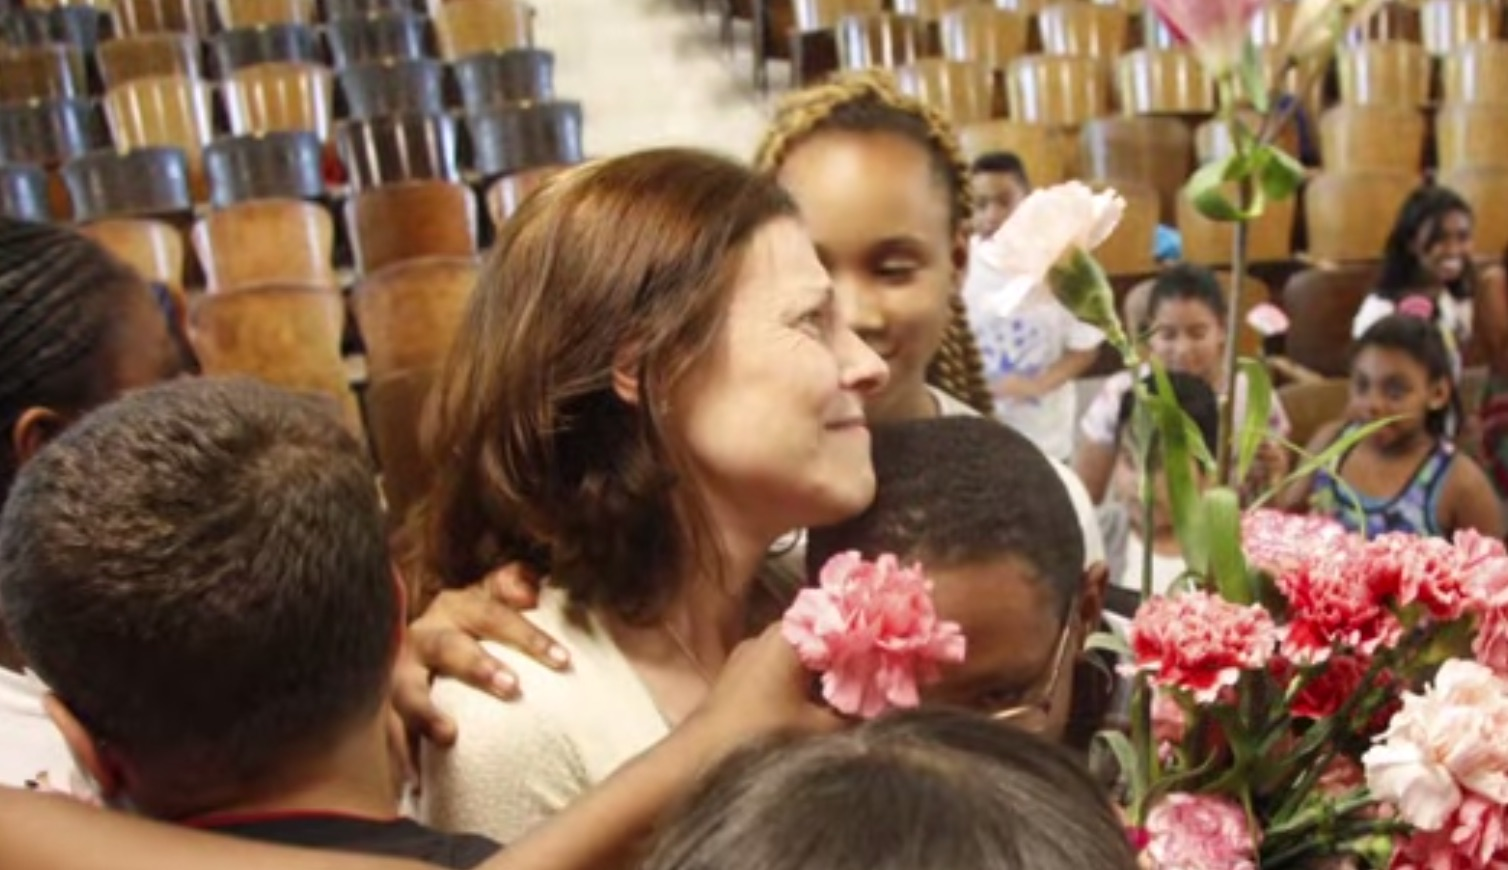 The PS22 chorus just gave their teacher the most amazing gift. Pass the tissues.